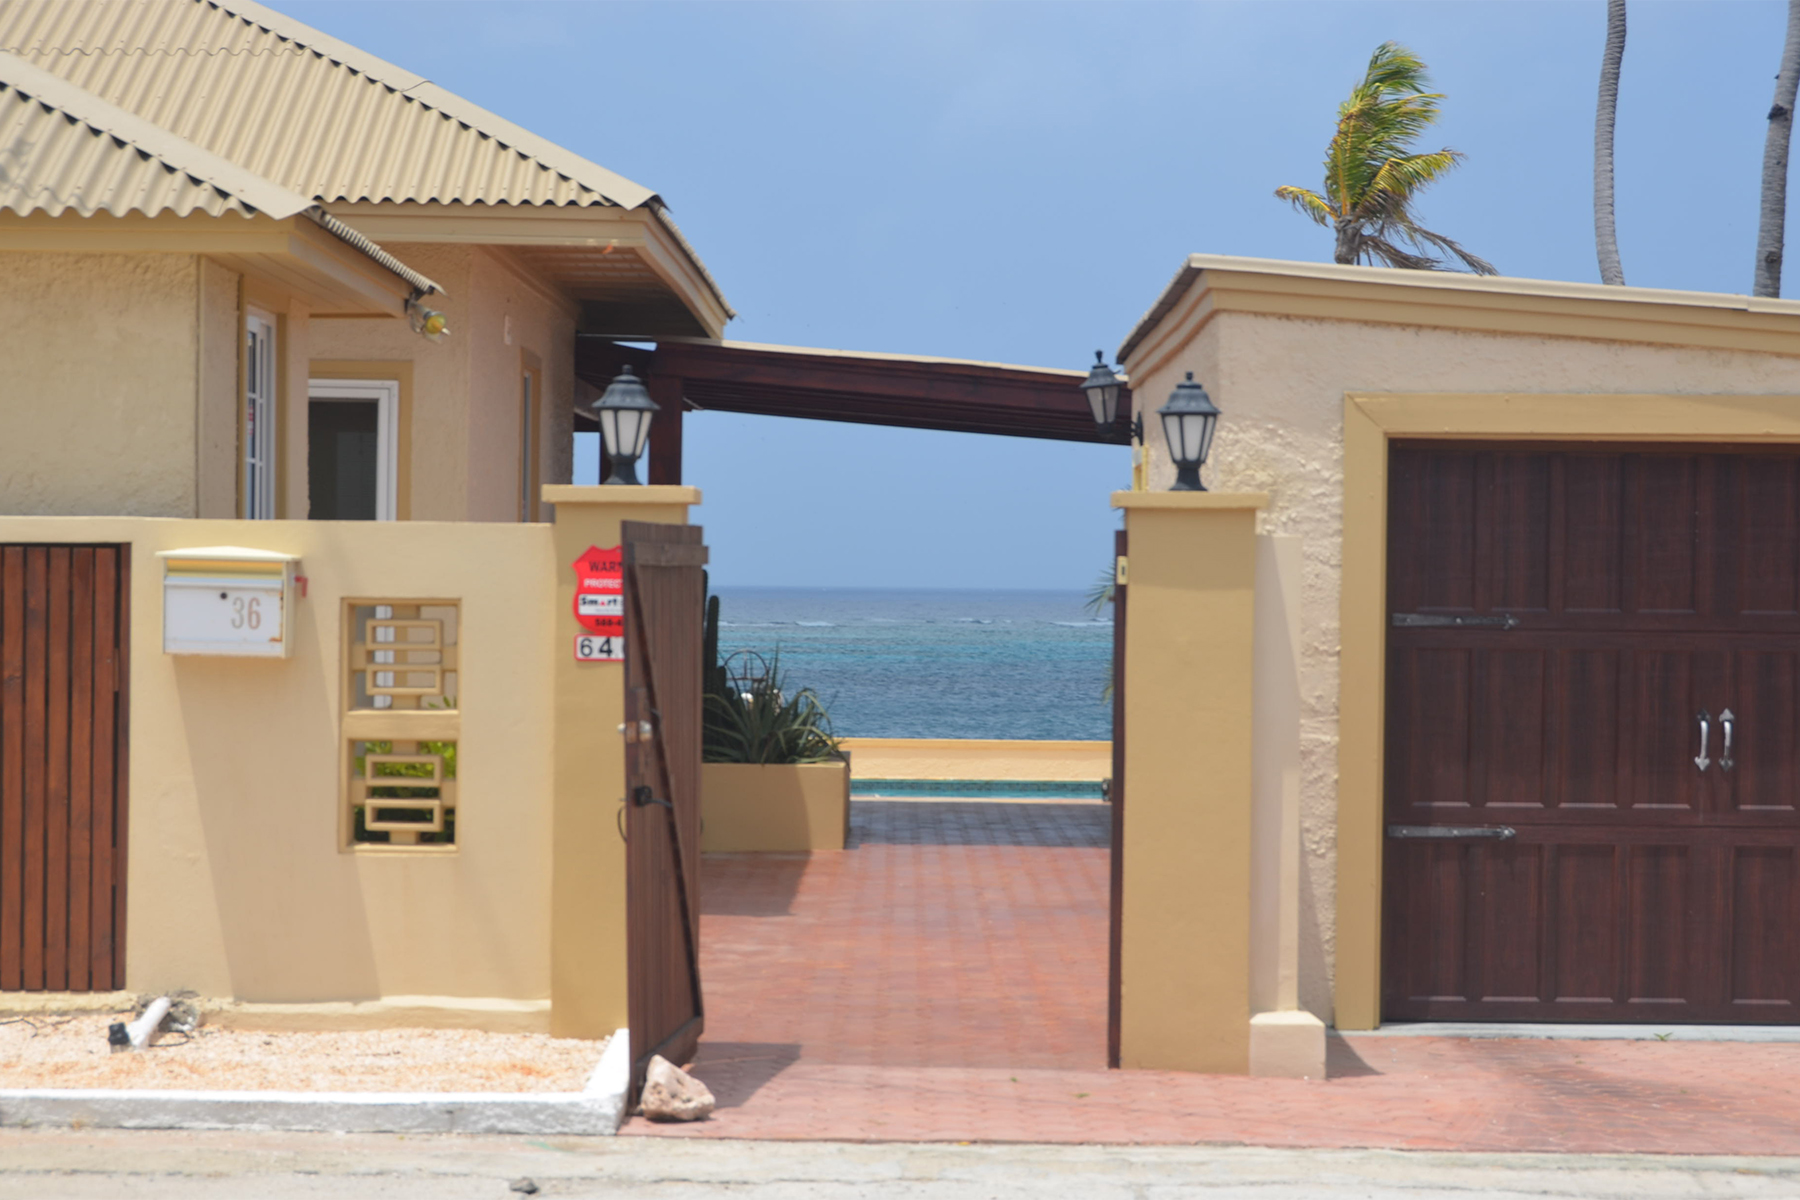 Additional photo for property listing at Aruba Beach House San Nicolas, Aruba Aruba